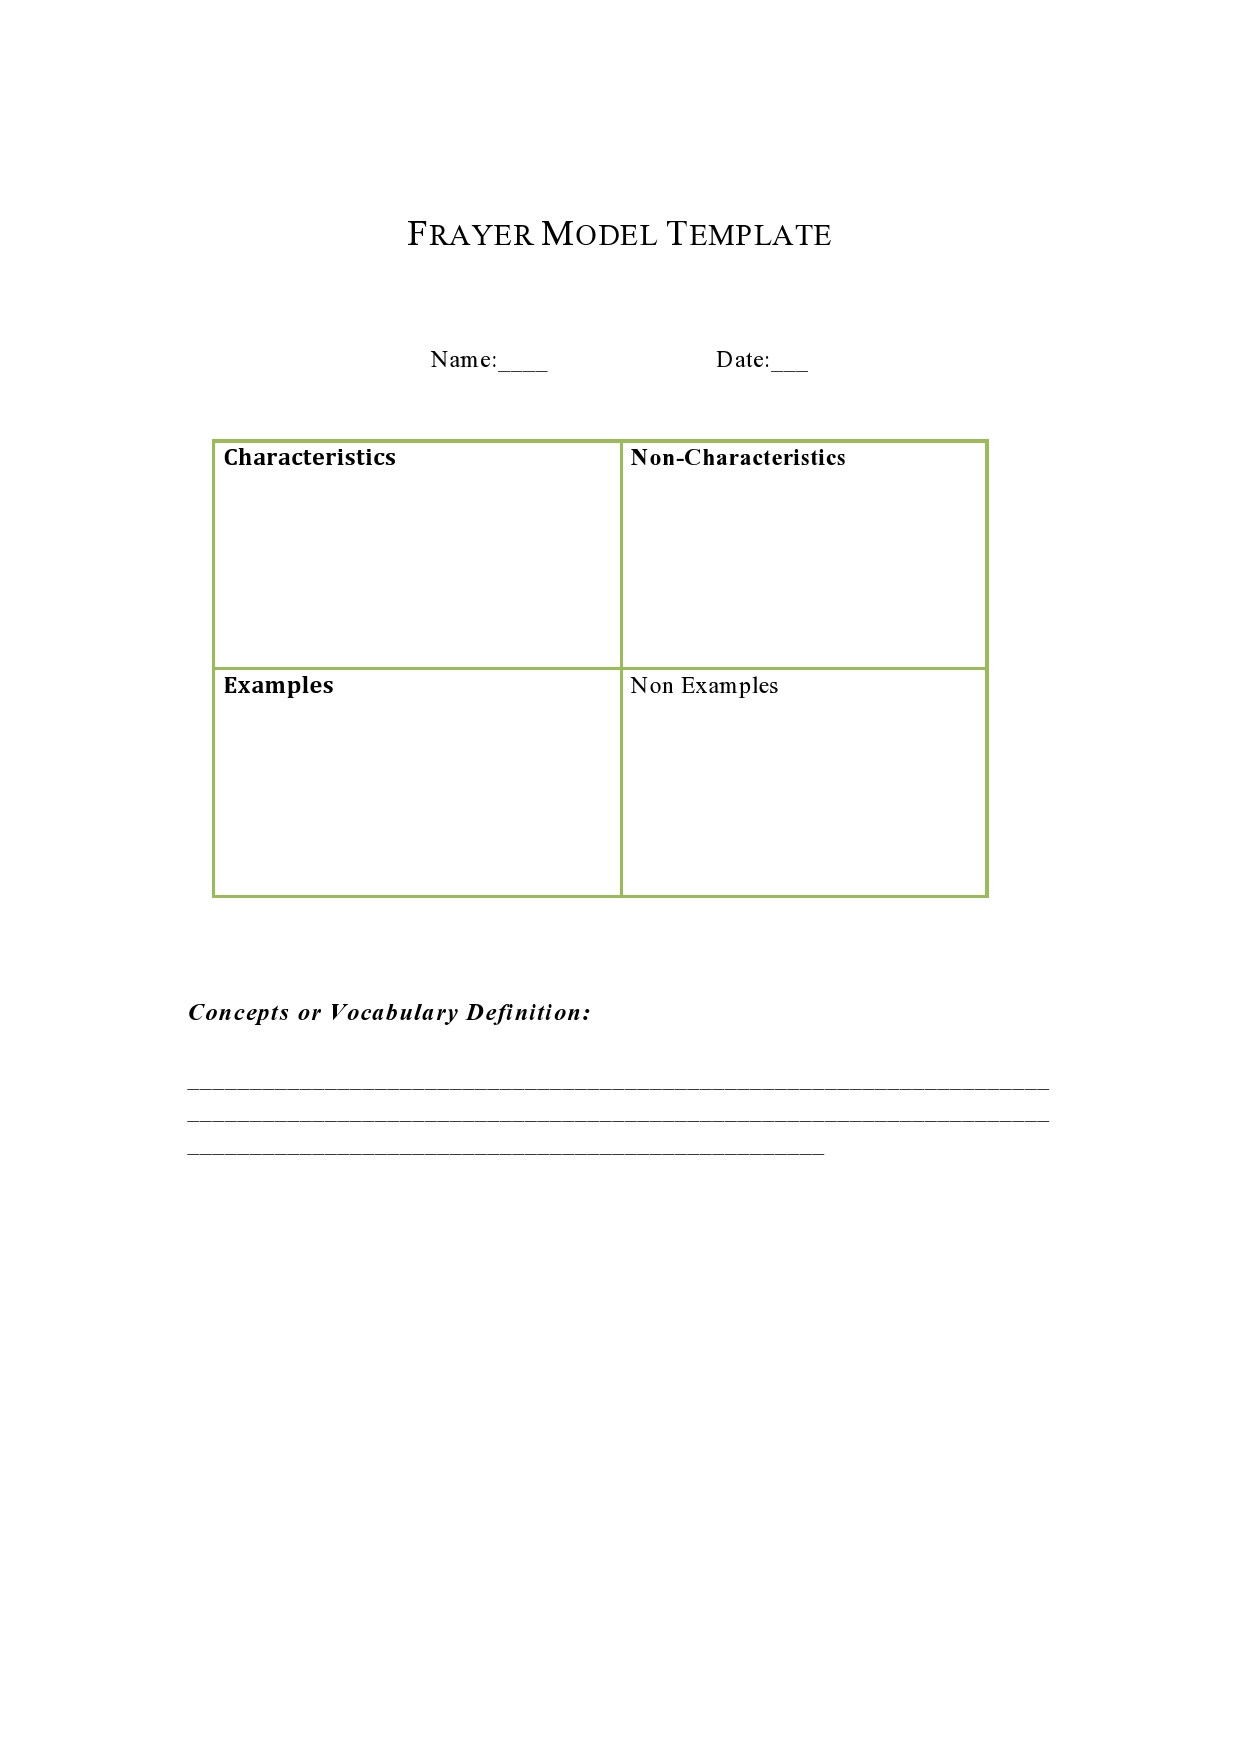 Blank Frayer Model Template